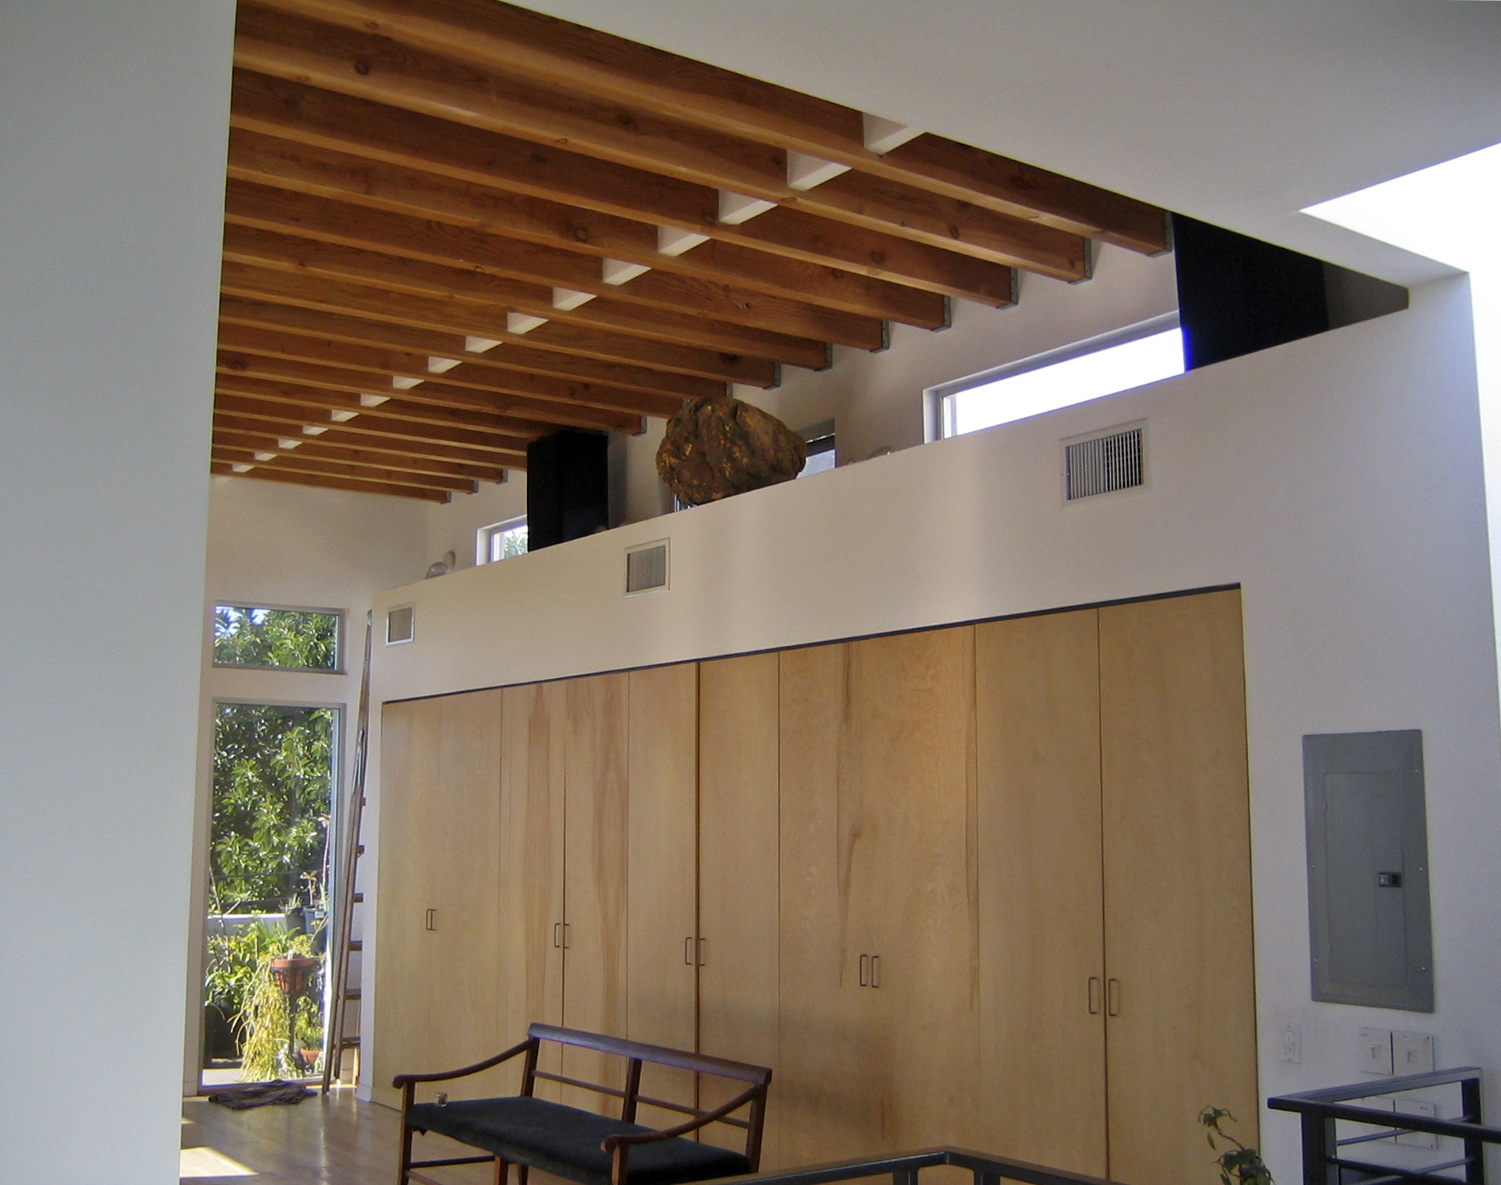 S.E.A.-Studio-Environmental-Architecture-David-Hertz-FAIA-West-Los-Angeles-Mar-Vista-sustainable-regenerative-restorative-design-modern-residential-adaptive-reuse-remodel-mindful-pool-concrete-skylights-passive-systems-natural-ventilation-garden-9.JPG